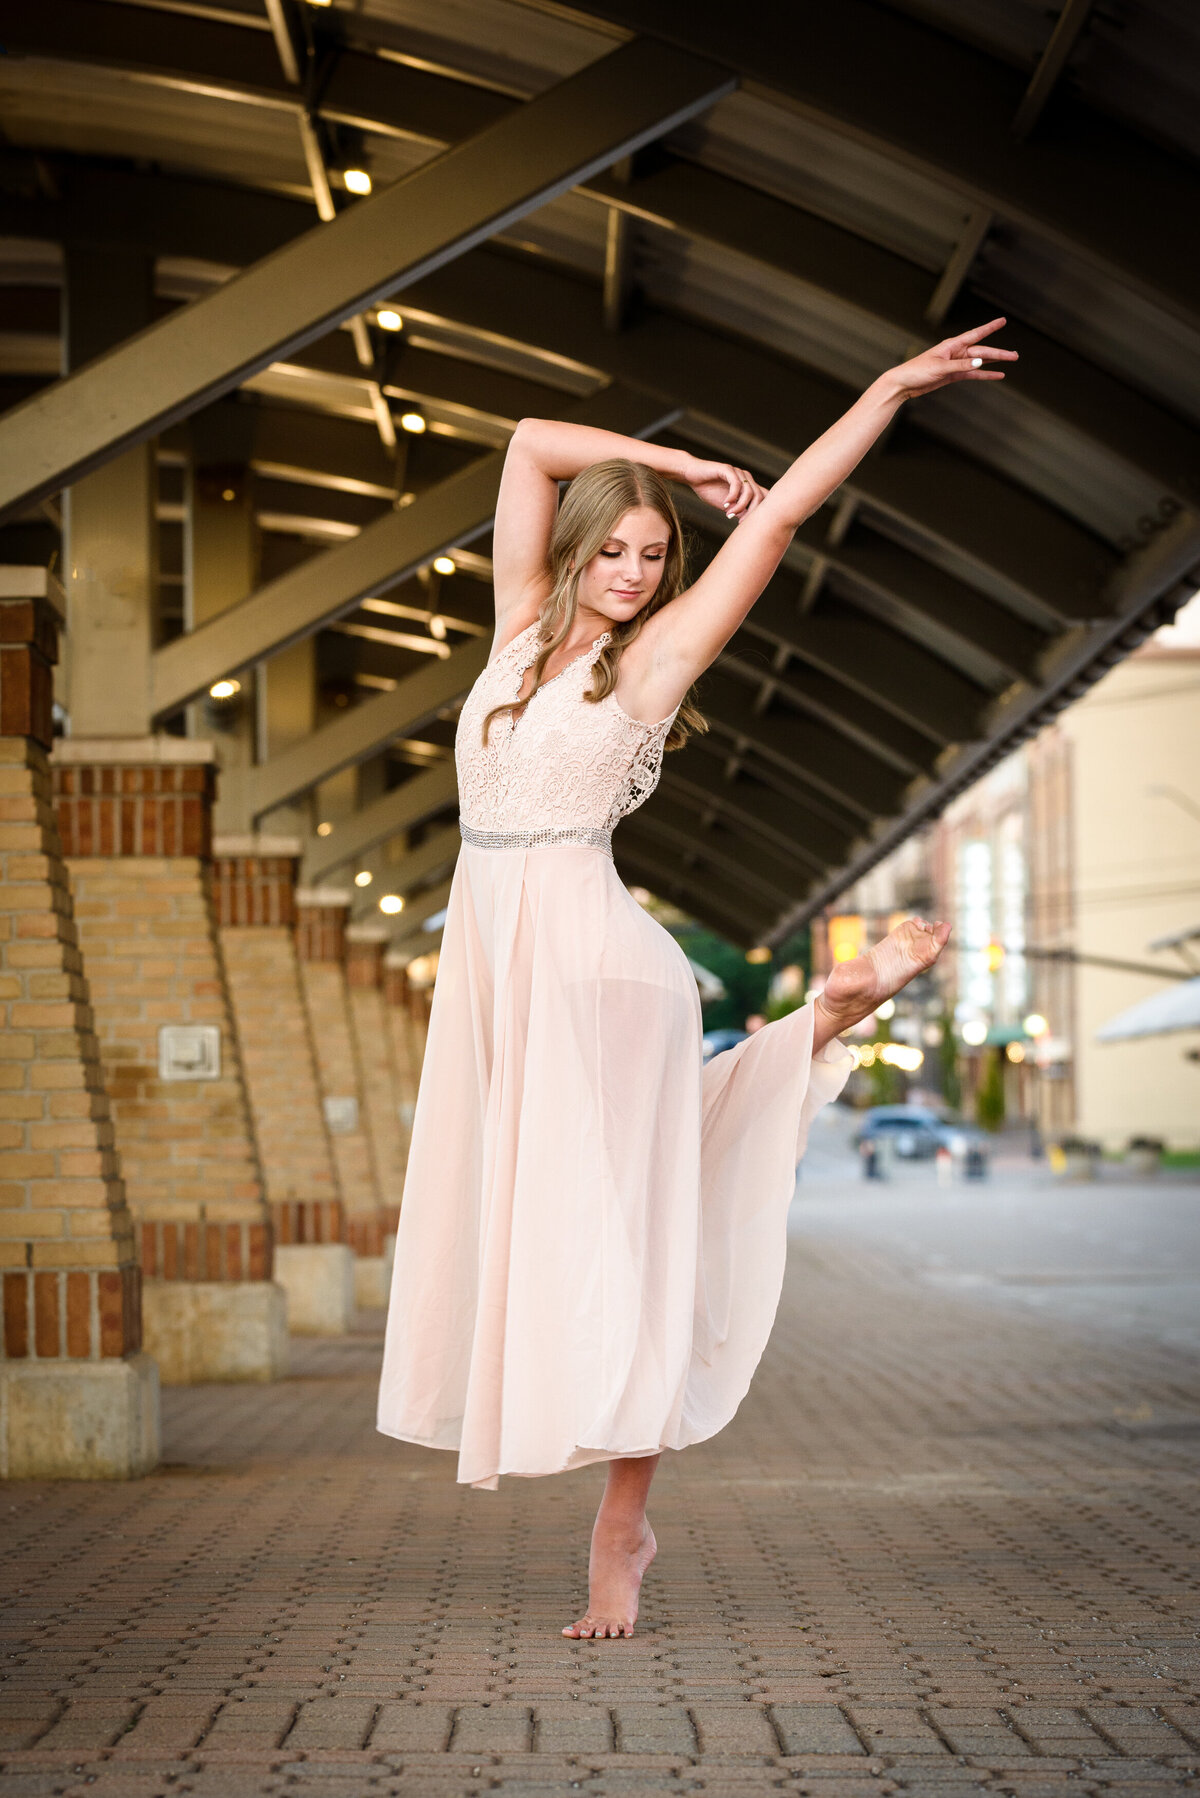 Ballet Senior Pictures in Holland MI Images by Jennifer-23